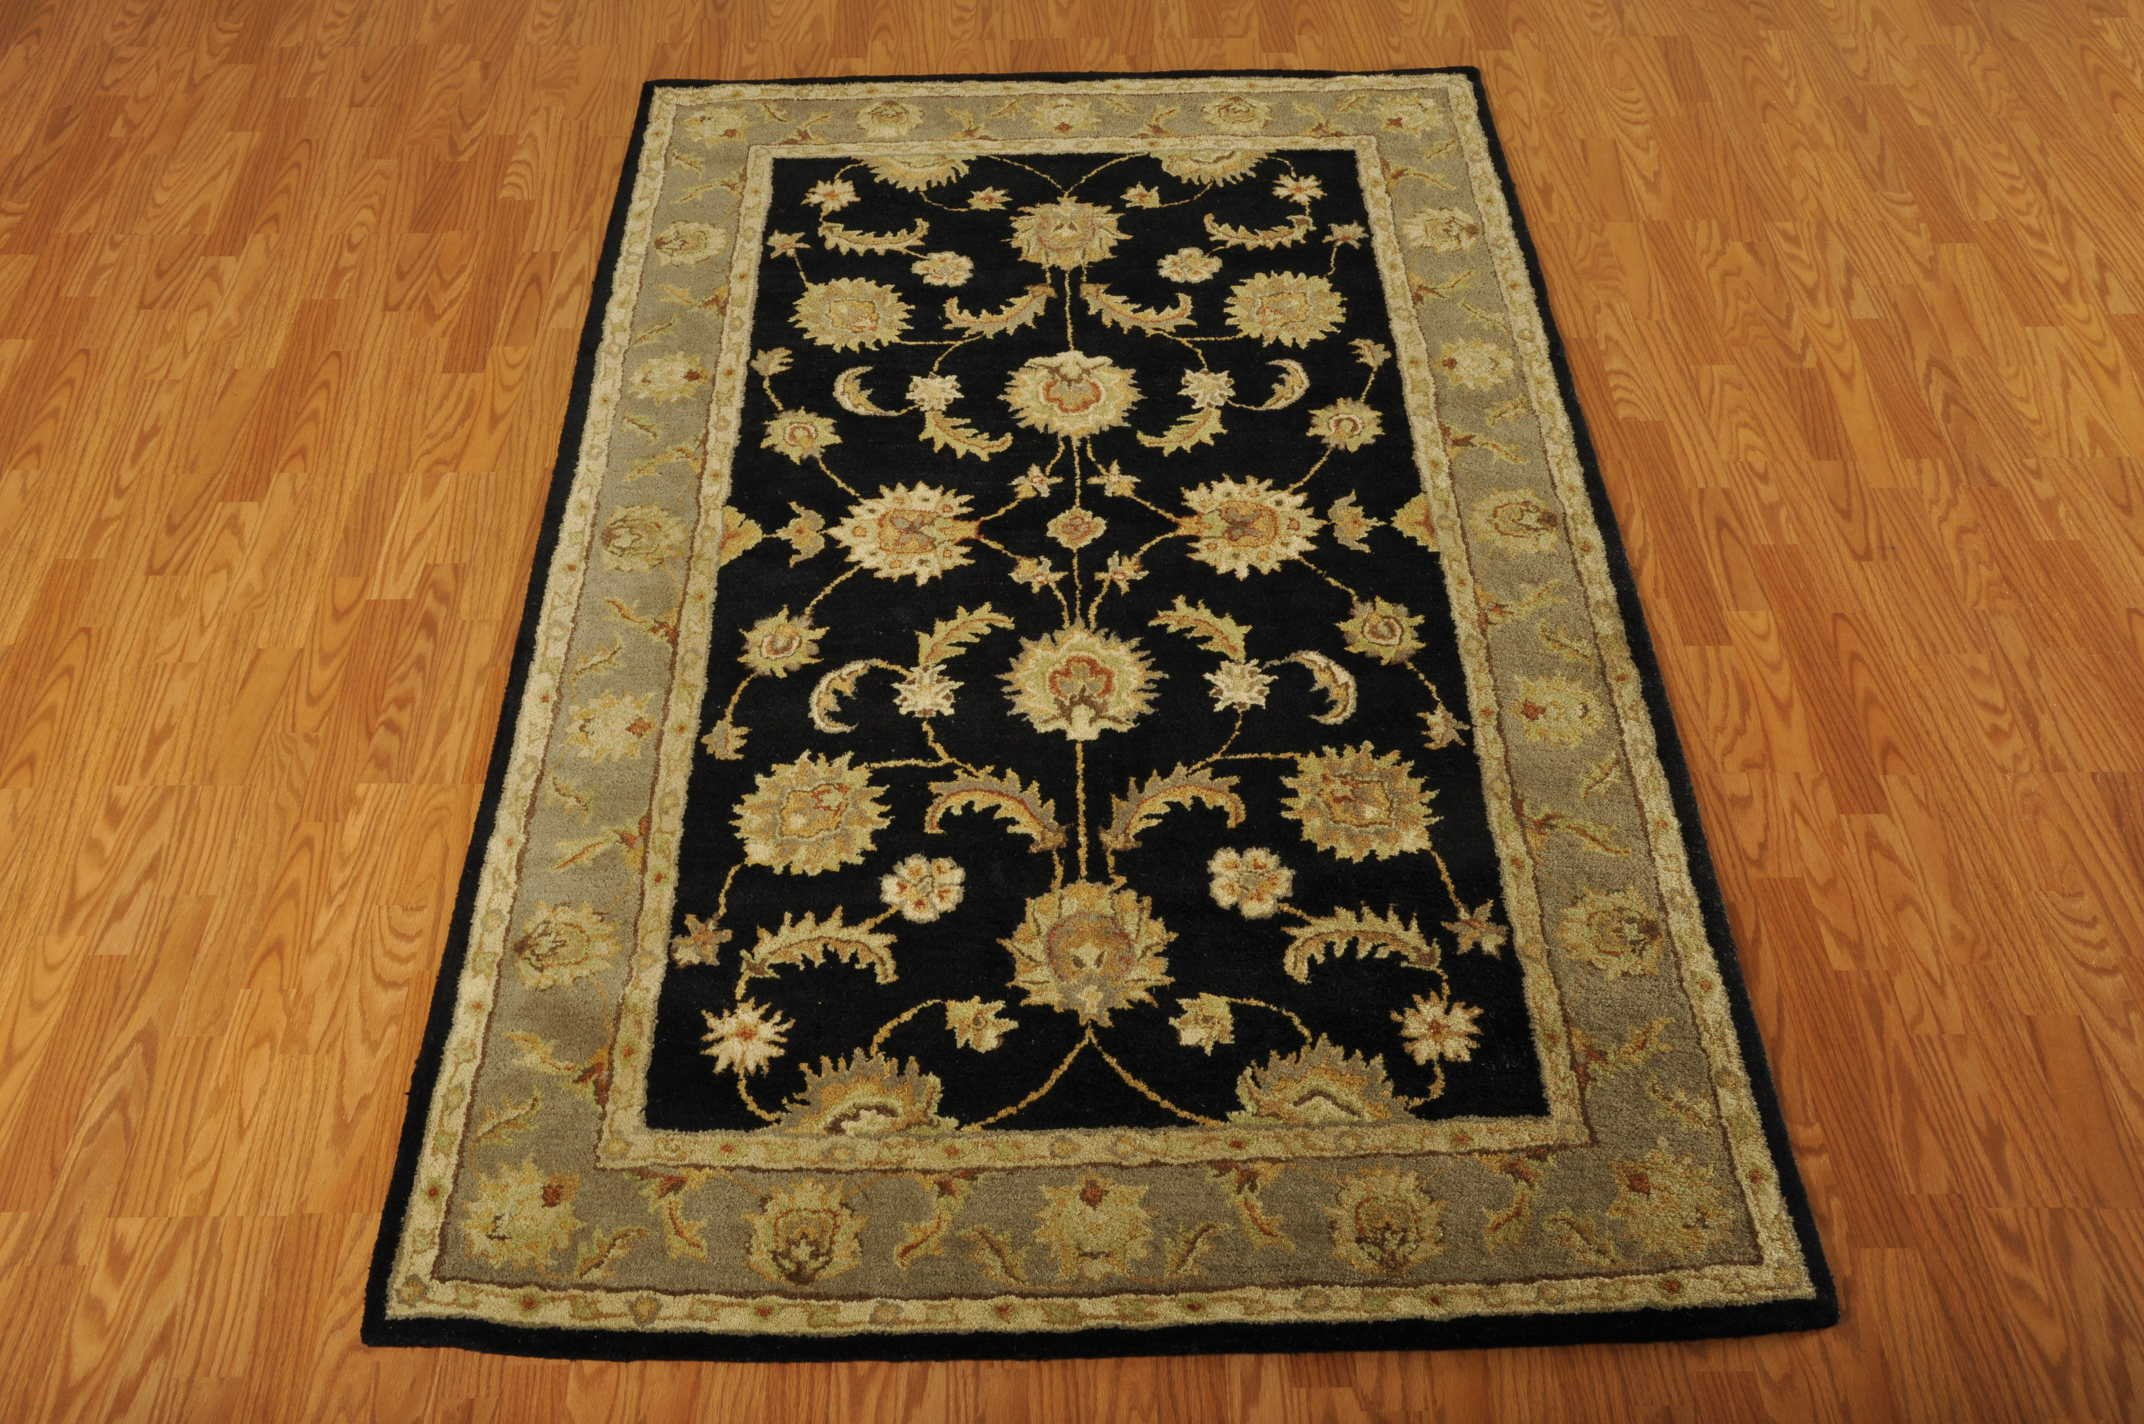 Nourison India House (IH90) Black Rectangle Area Rug, 3-Feet 6-Inches by 5-Feet 6-Inches (3'6'' x 5'6'')